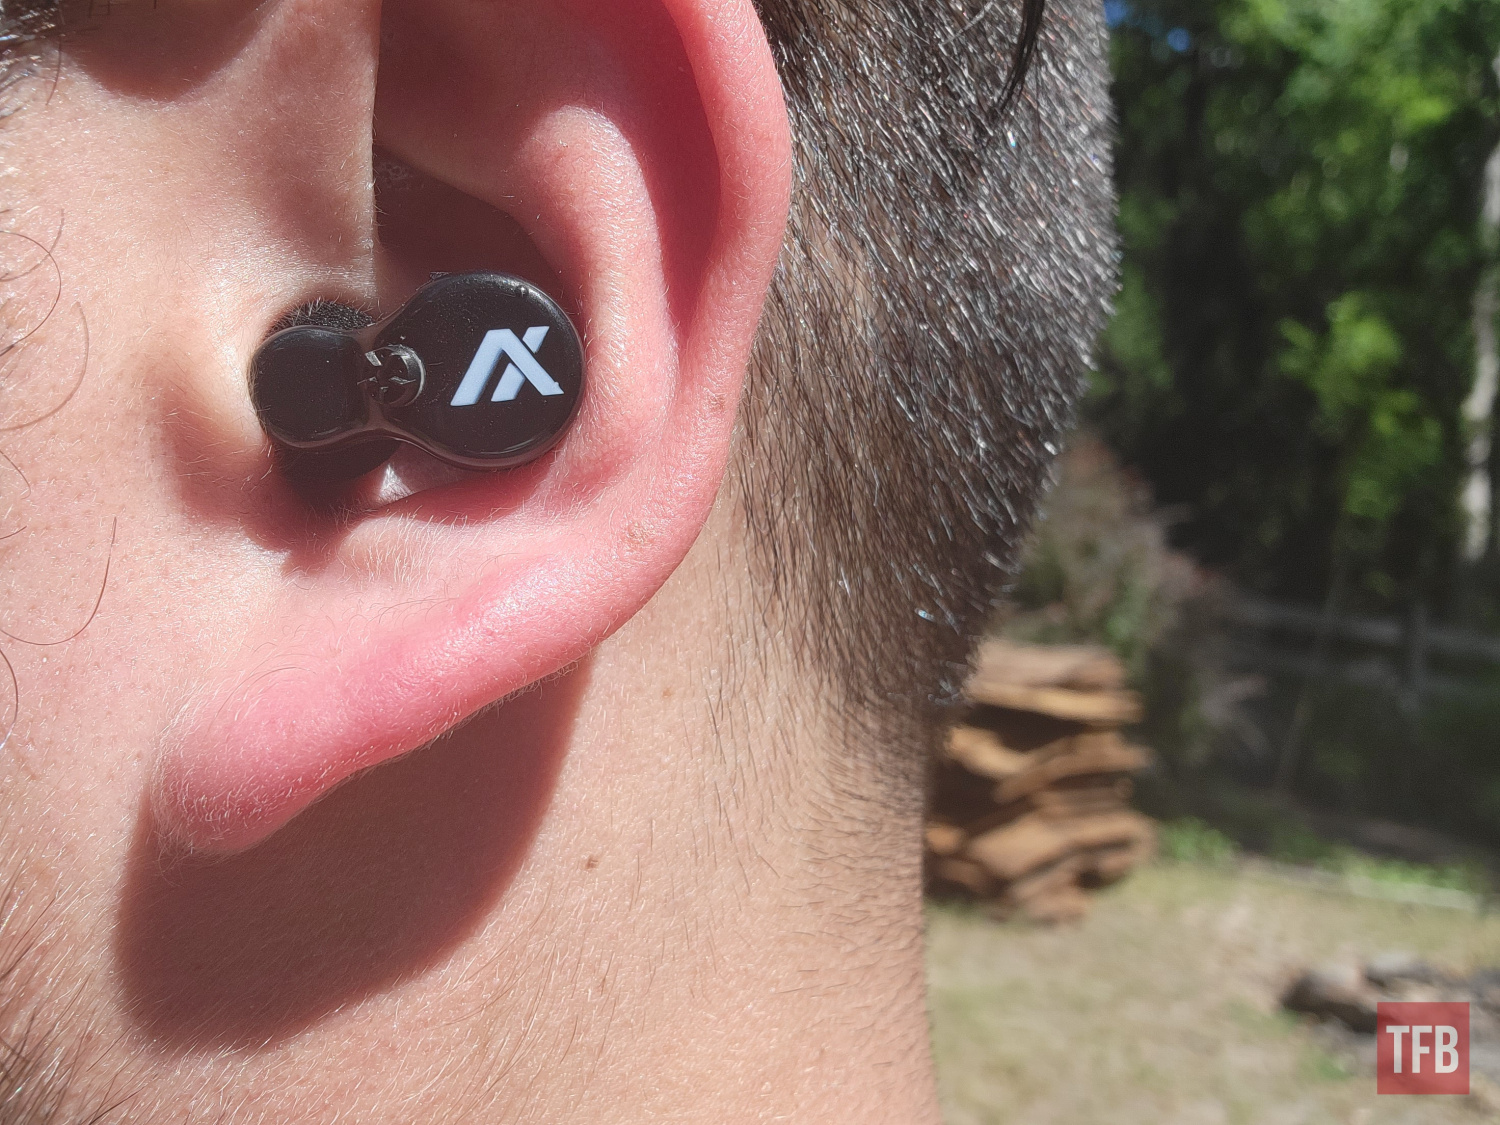 TFB Review: The Lightweight and Low-Profile AXIL GS Digital 1 Earplugs